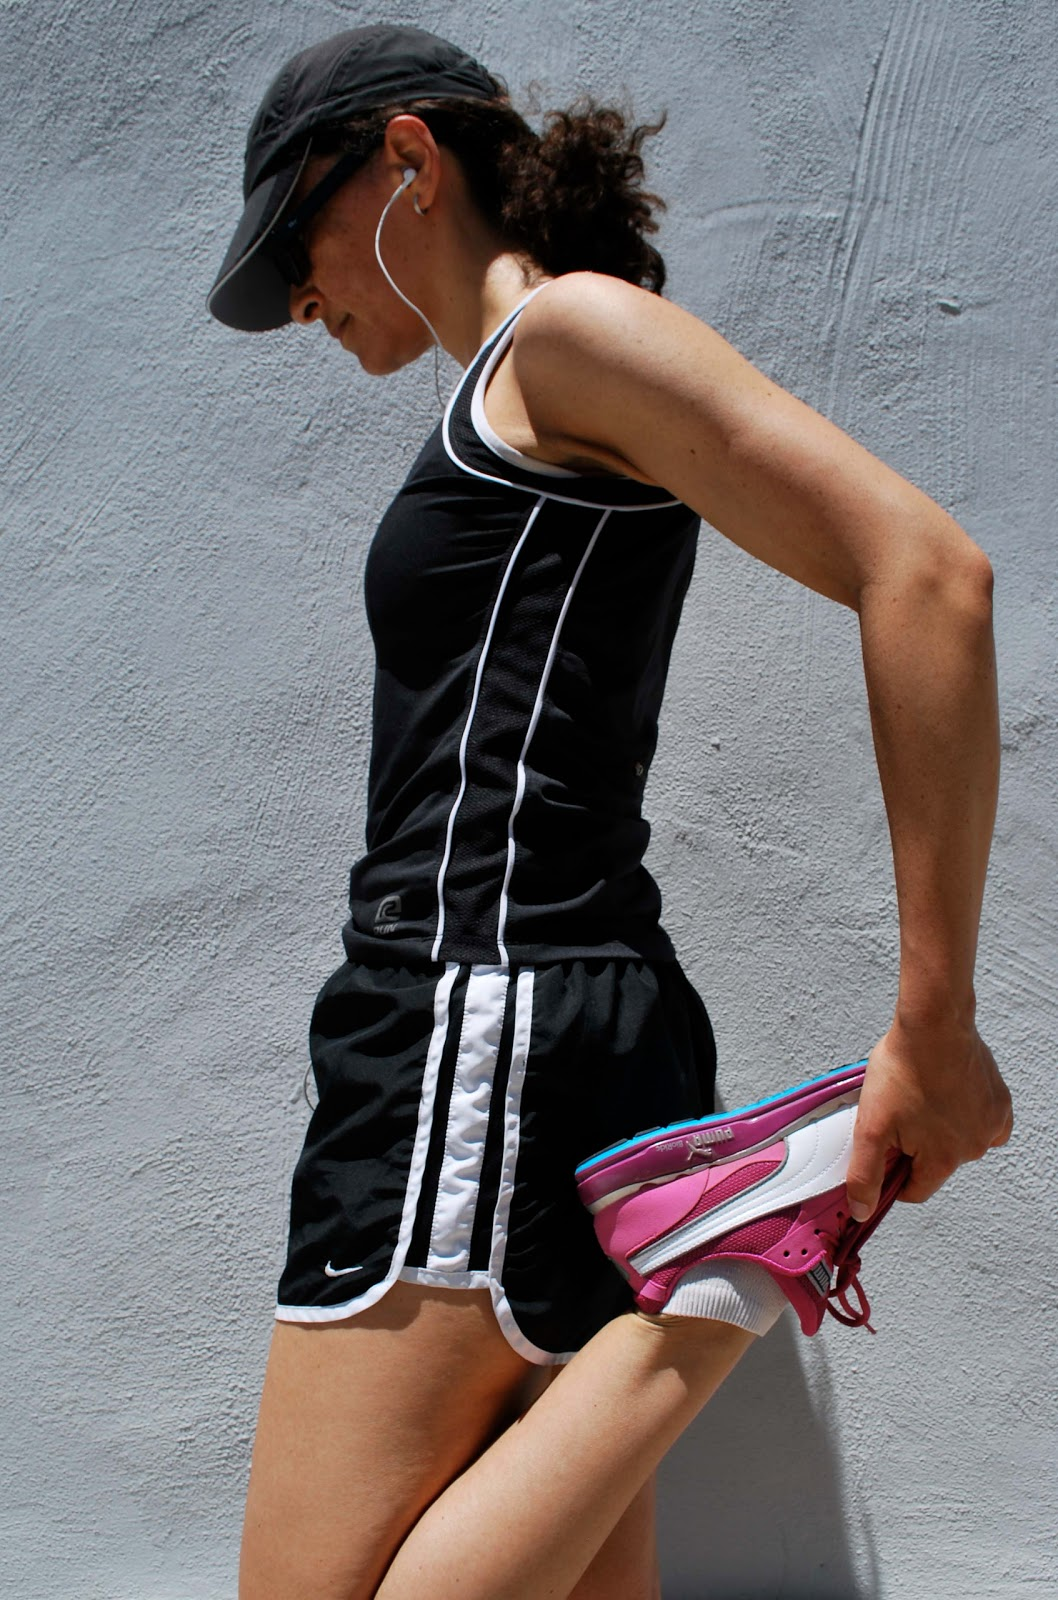 To acquire Wear to what running 15 degrees pictures trends